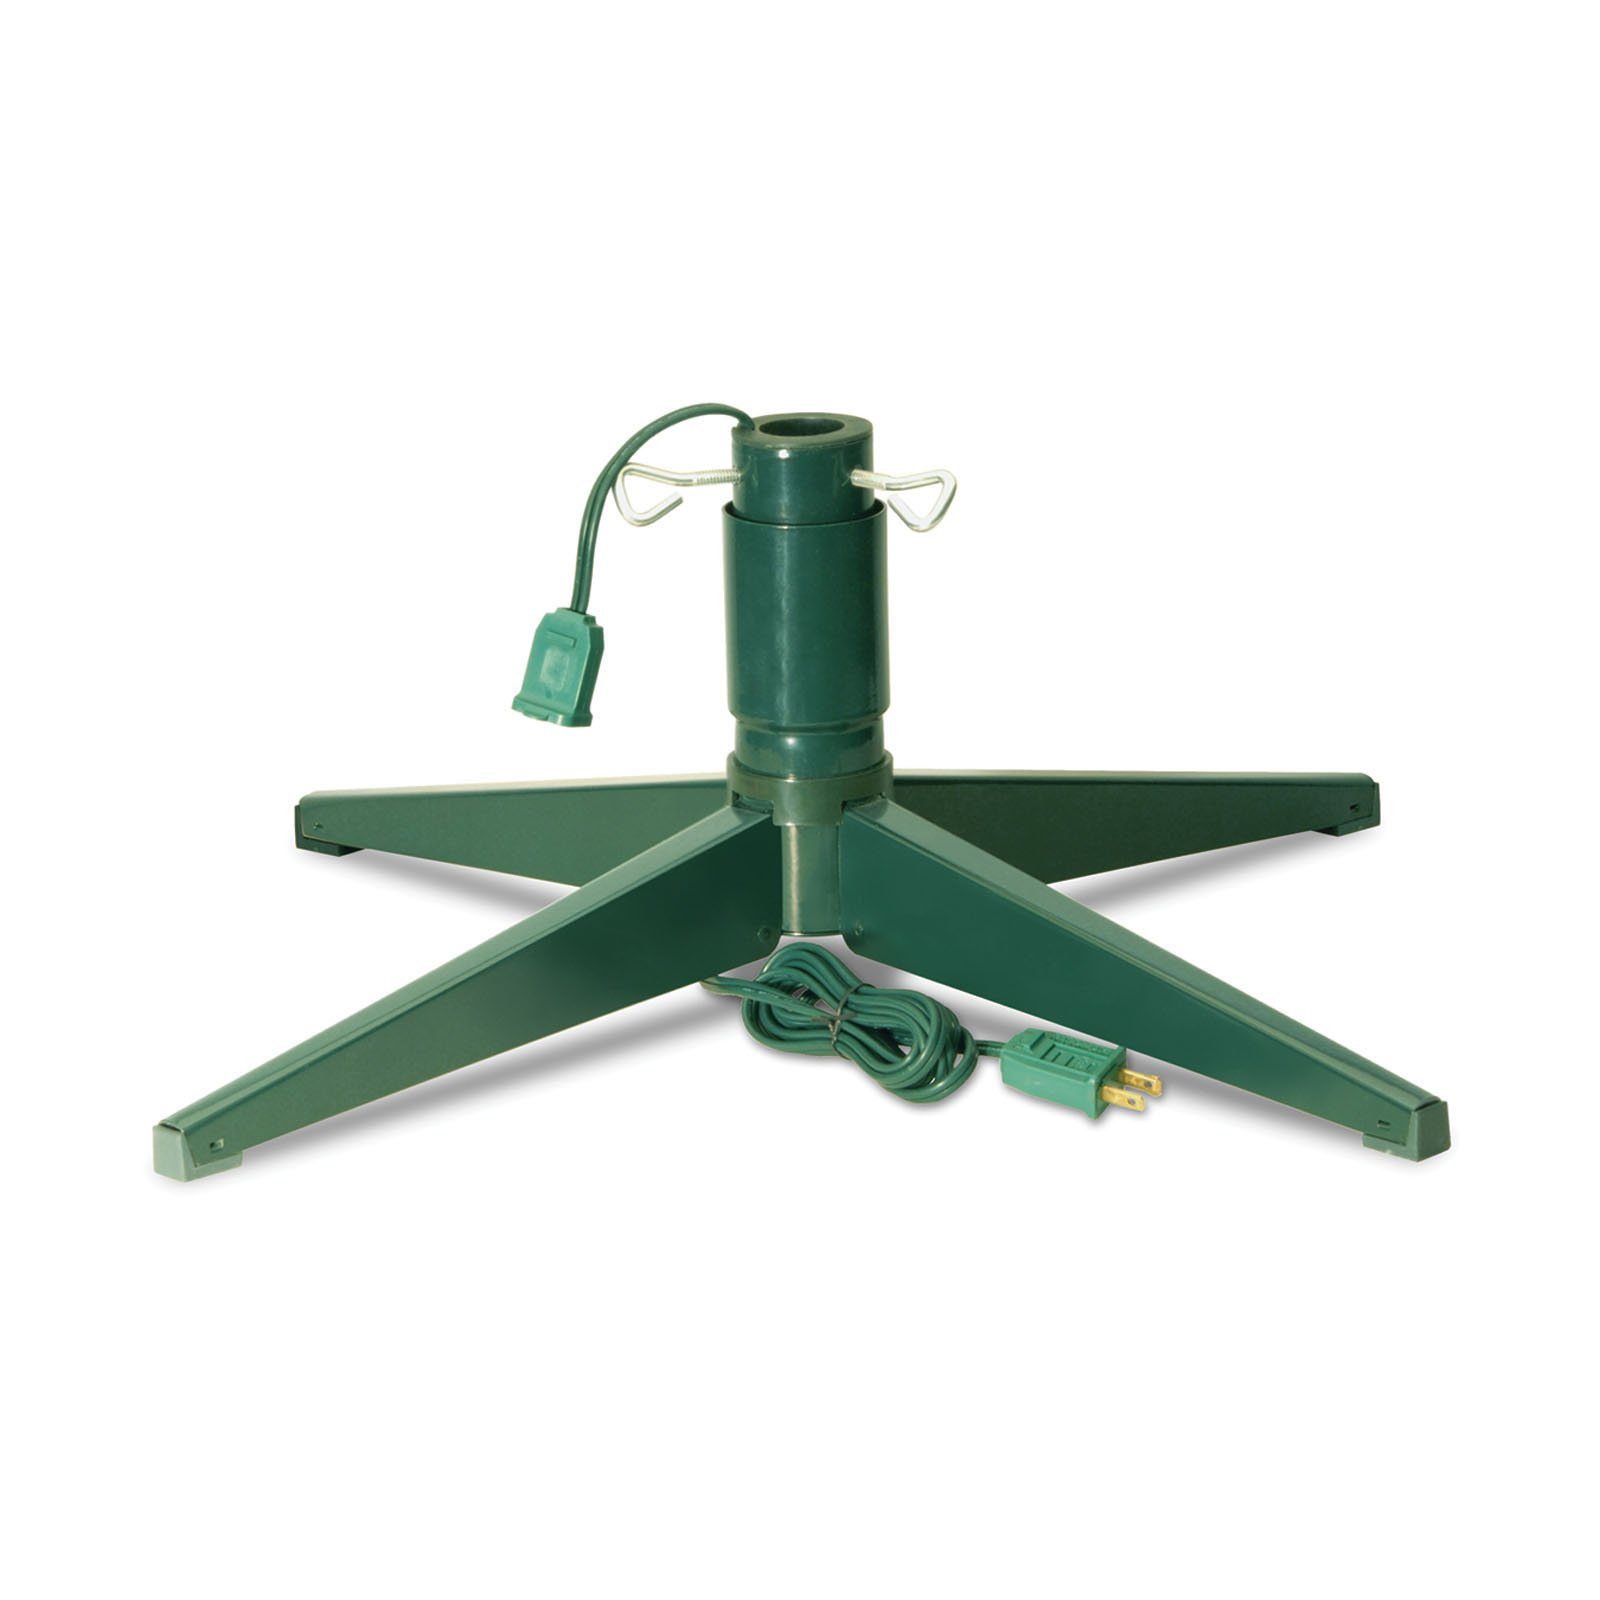 Rotating Christmas Tree Stands